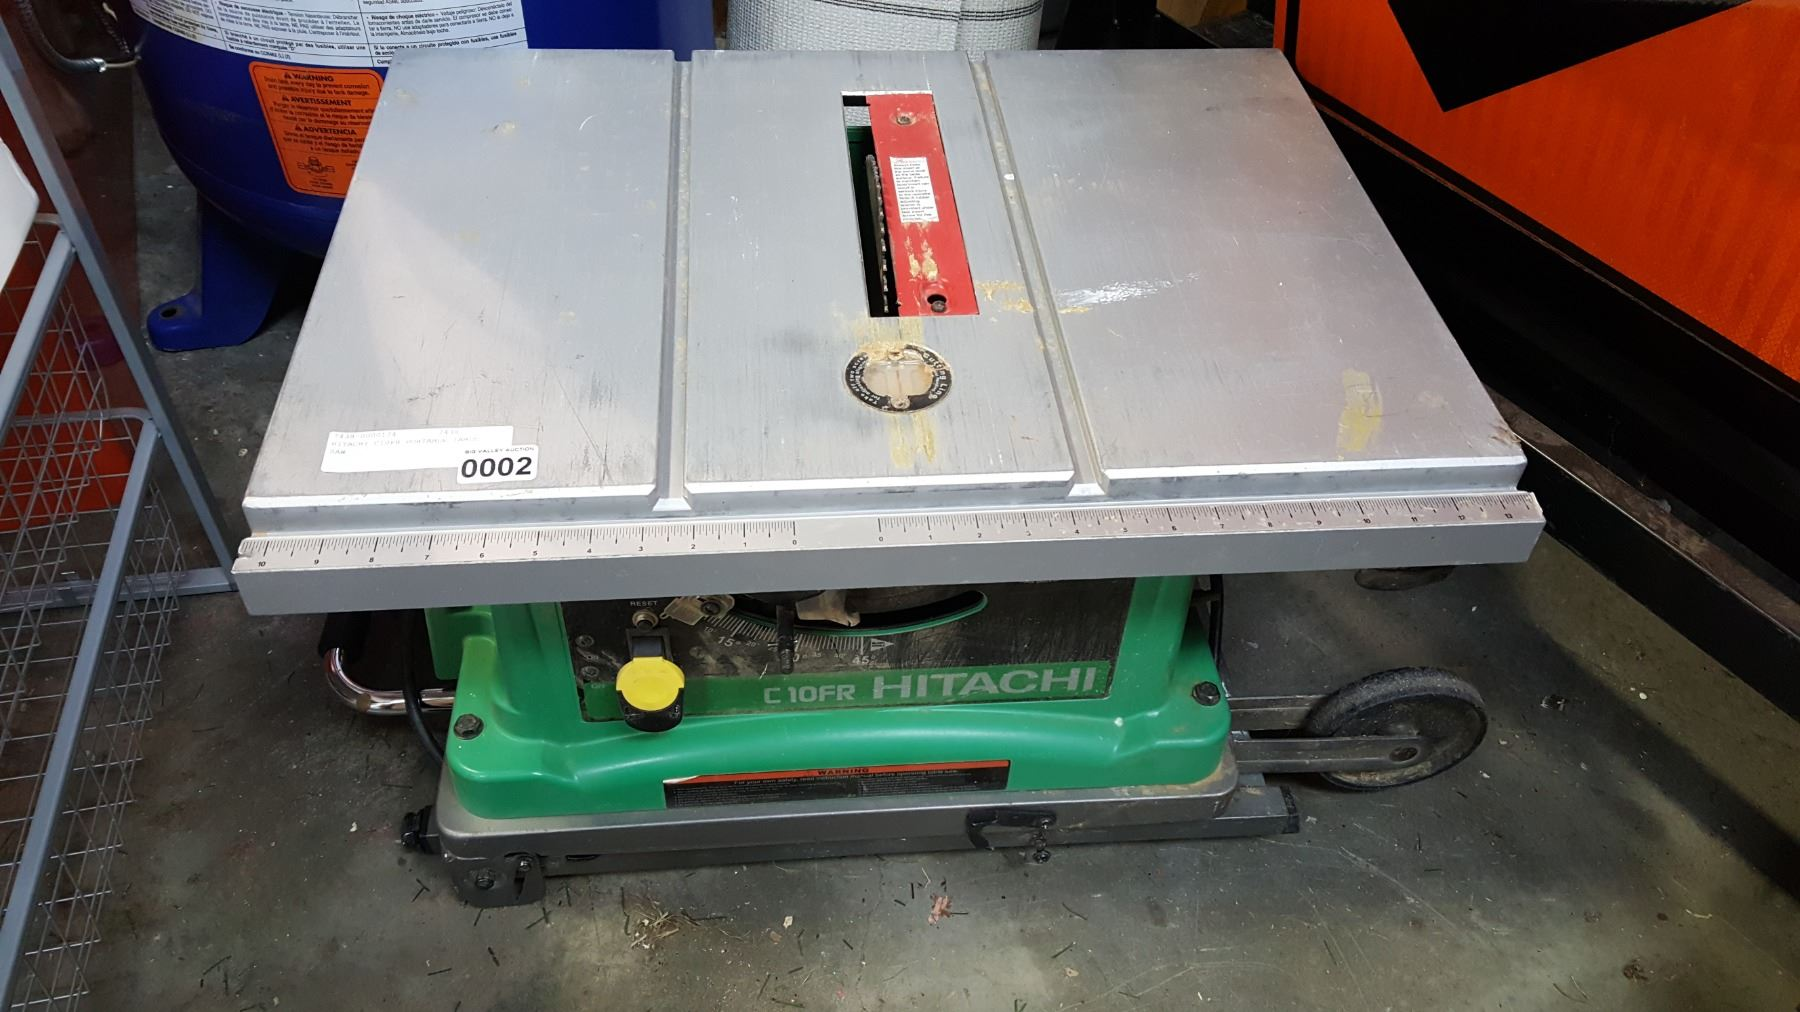 Hitachi C10fr Portable Table Saw